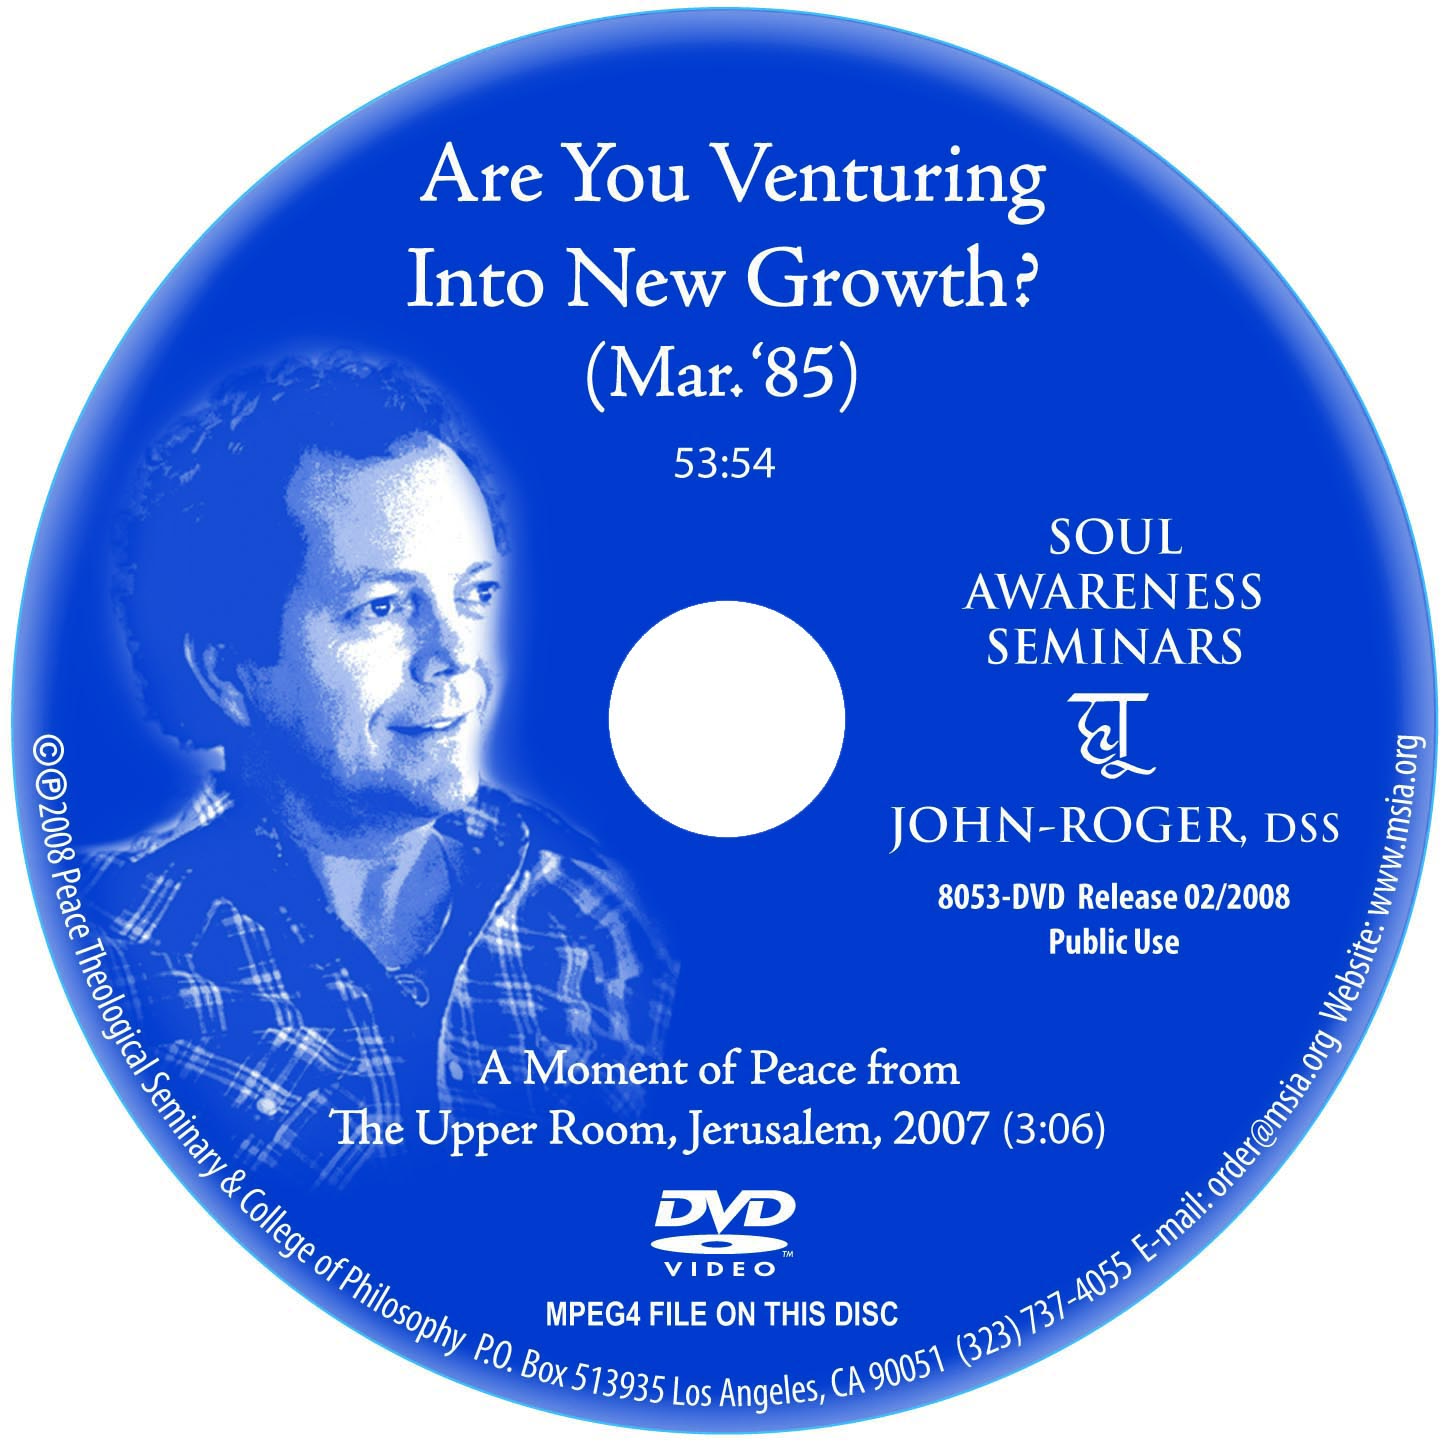 Are You Venturing into New Growth? MP4